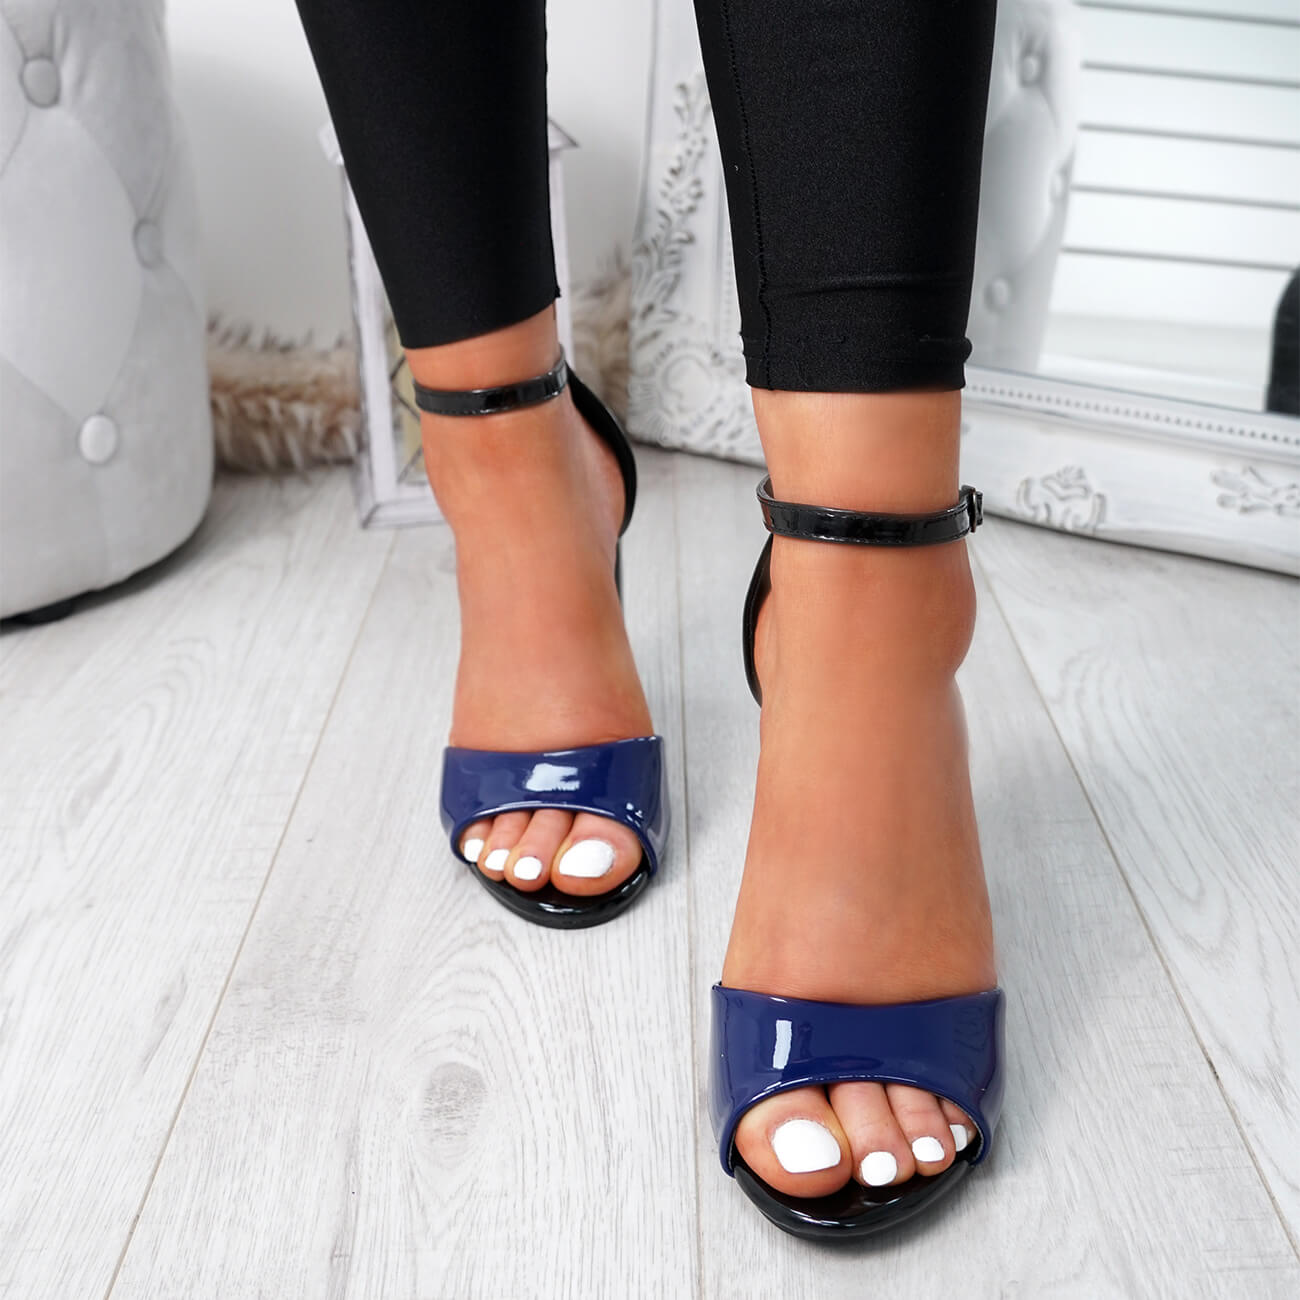 WOMENS-LADIES-ANKLE-STRAP-HIGH-BLOCK-HEEL-SANDALS-PEEP-TOE-OFFICE-CASUAL-SHOES thumbnail 20